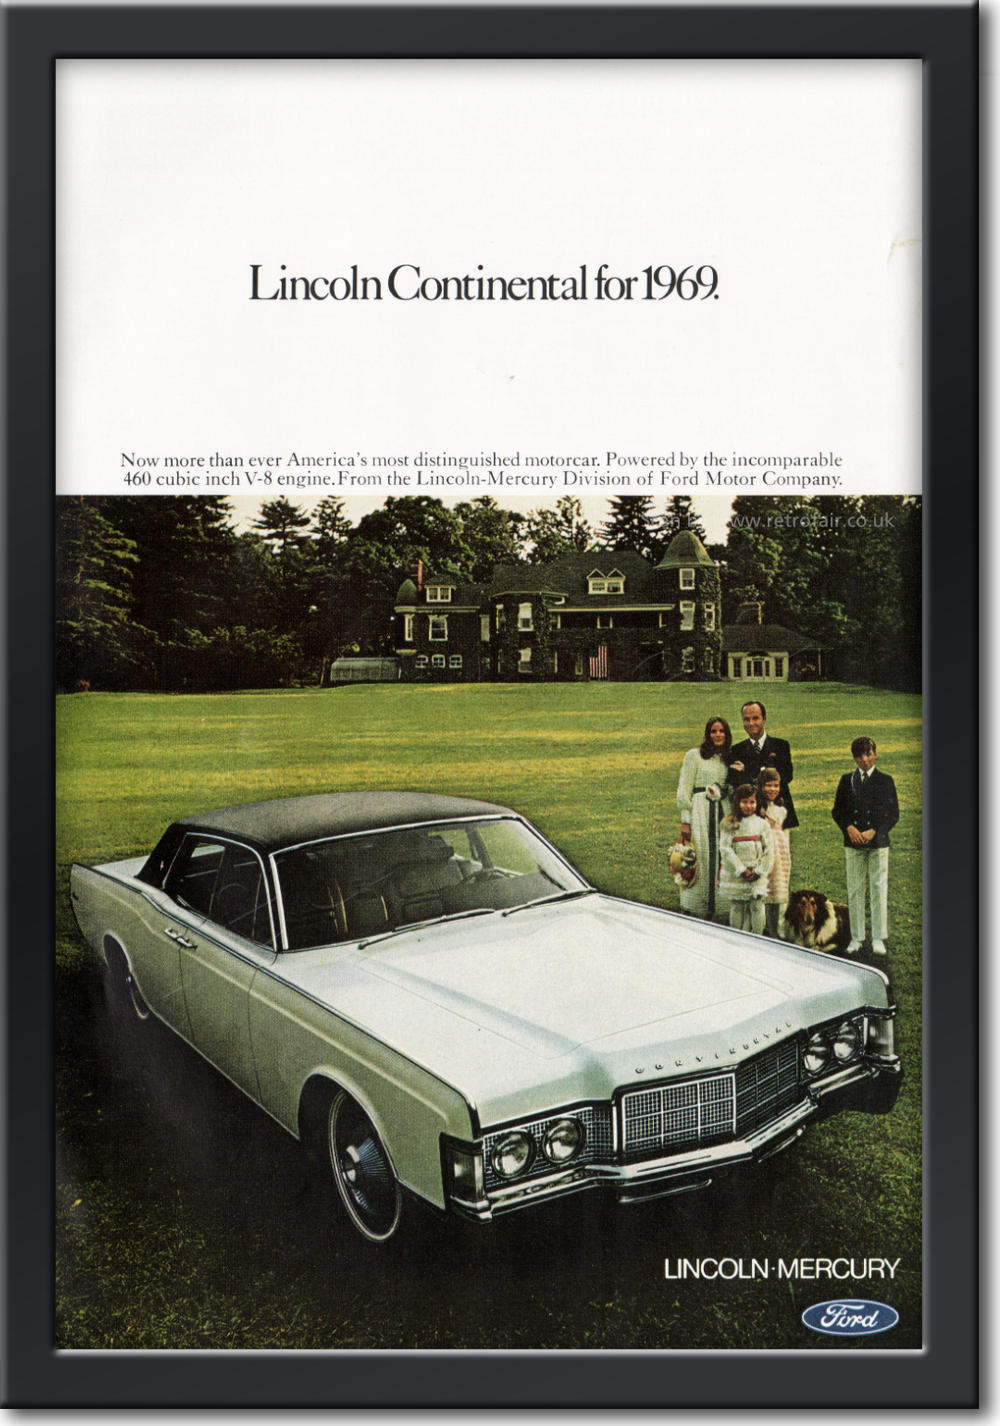 1968 Lincoln - framed preview vintage ad